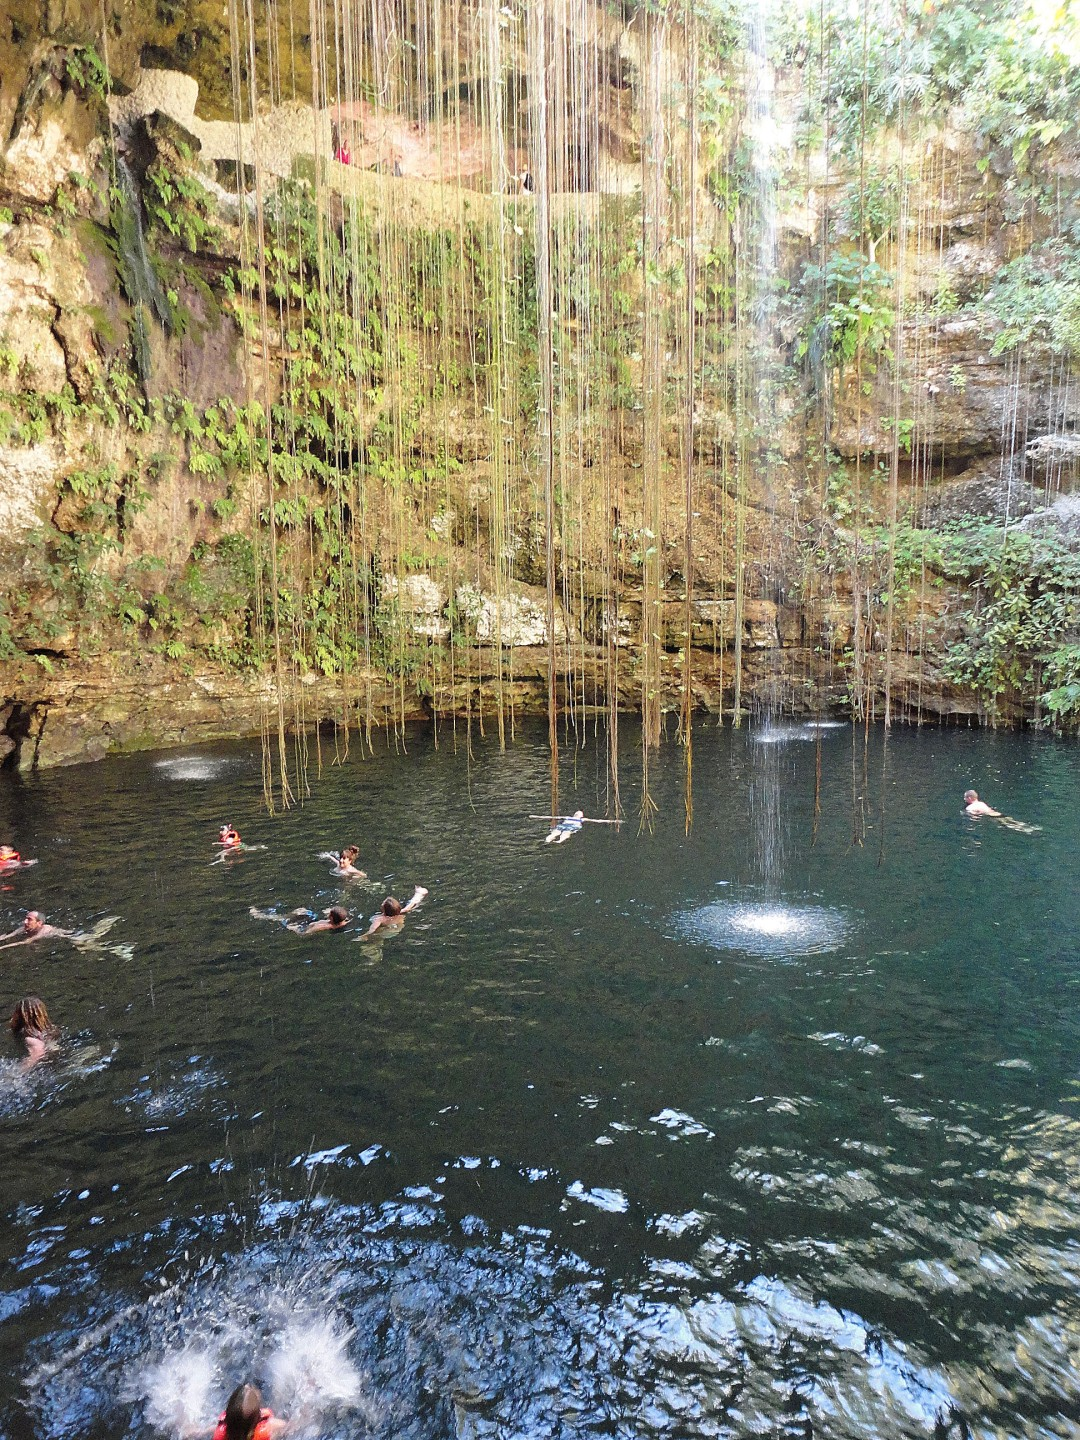 Robin floats, Ik Kil cenote, near Chichen Itza, MX